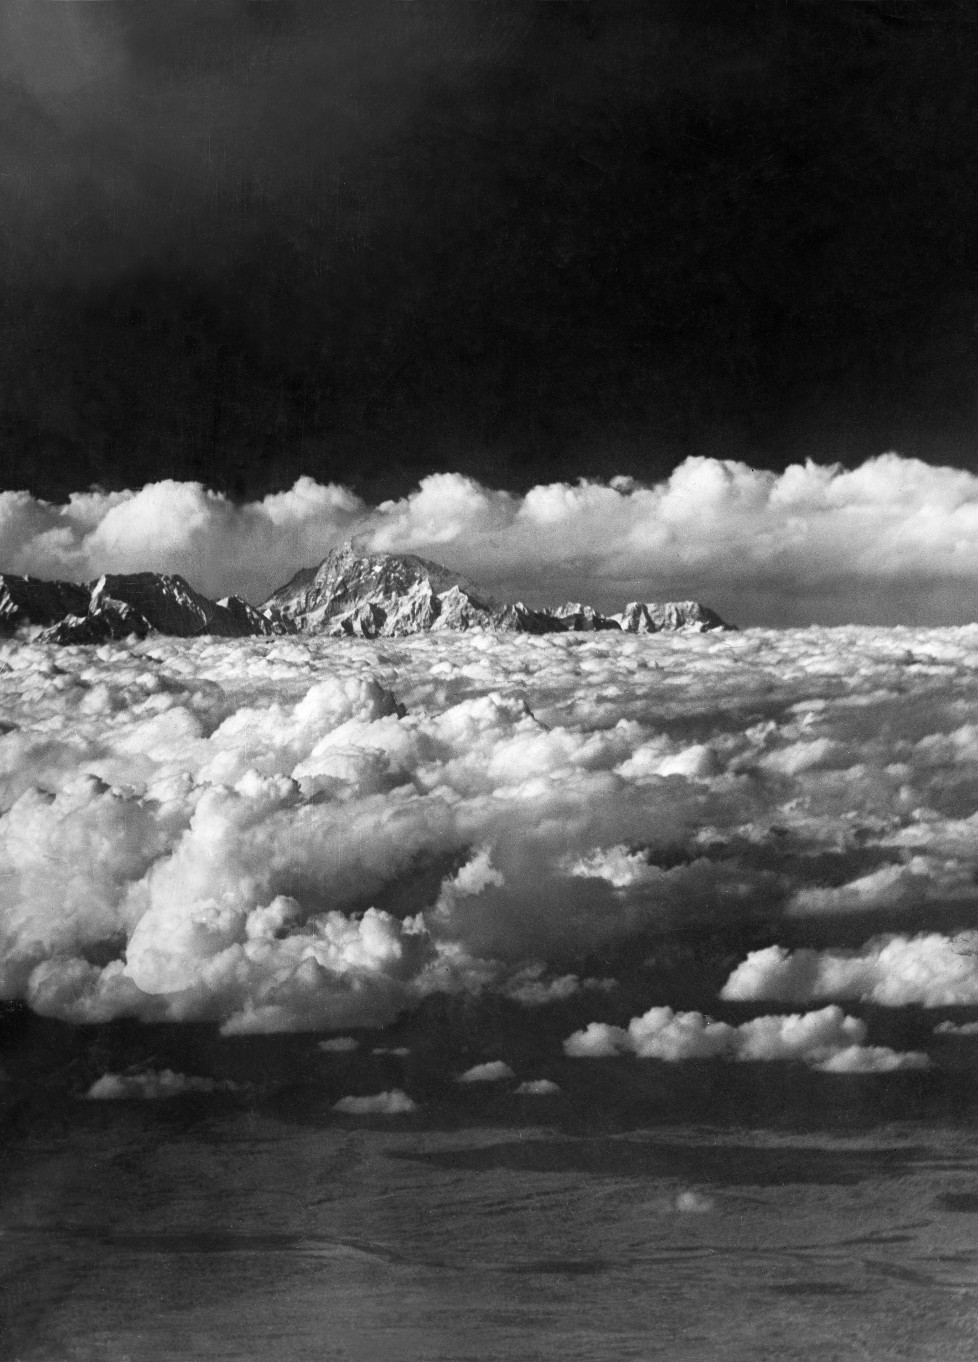 (GERMANY OUT) The Houston Mount Everest Flight: infra-red picture of the Everest Range taken at a range of over 100 miles from one of the expedition's machine at a height of 22.000 ft. - April 1933- Photographer: BonnettVintage property of ullstein bild (Photo by ullstein bild/ullstein bild via Getty Images)